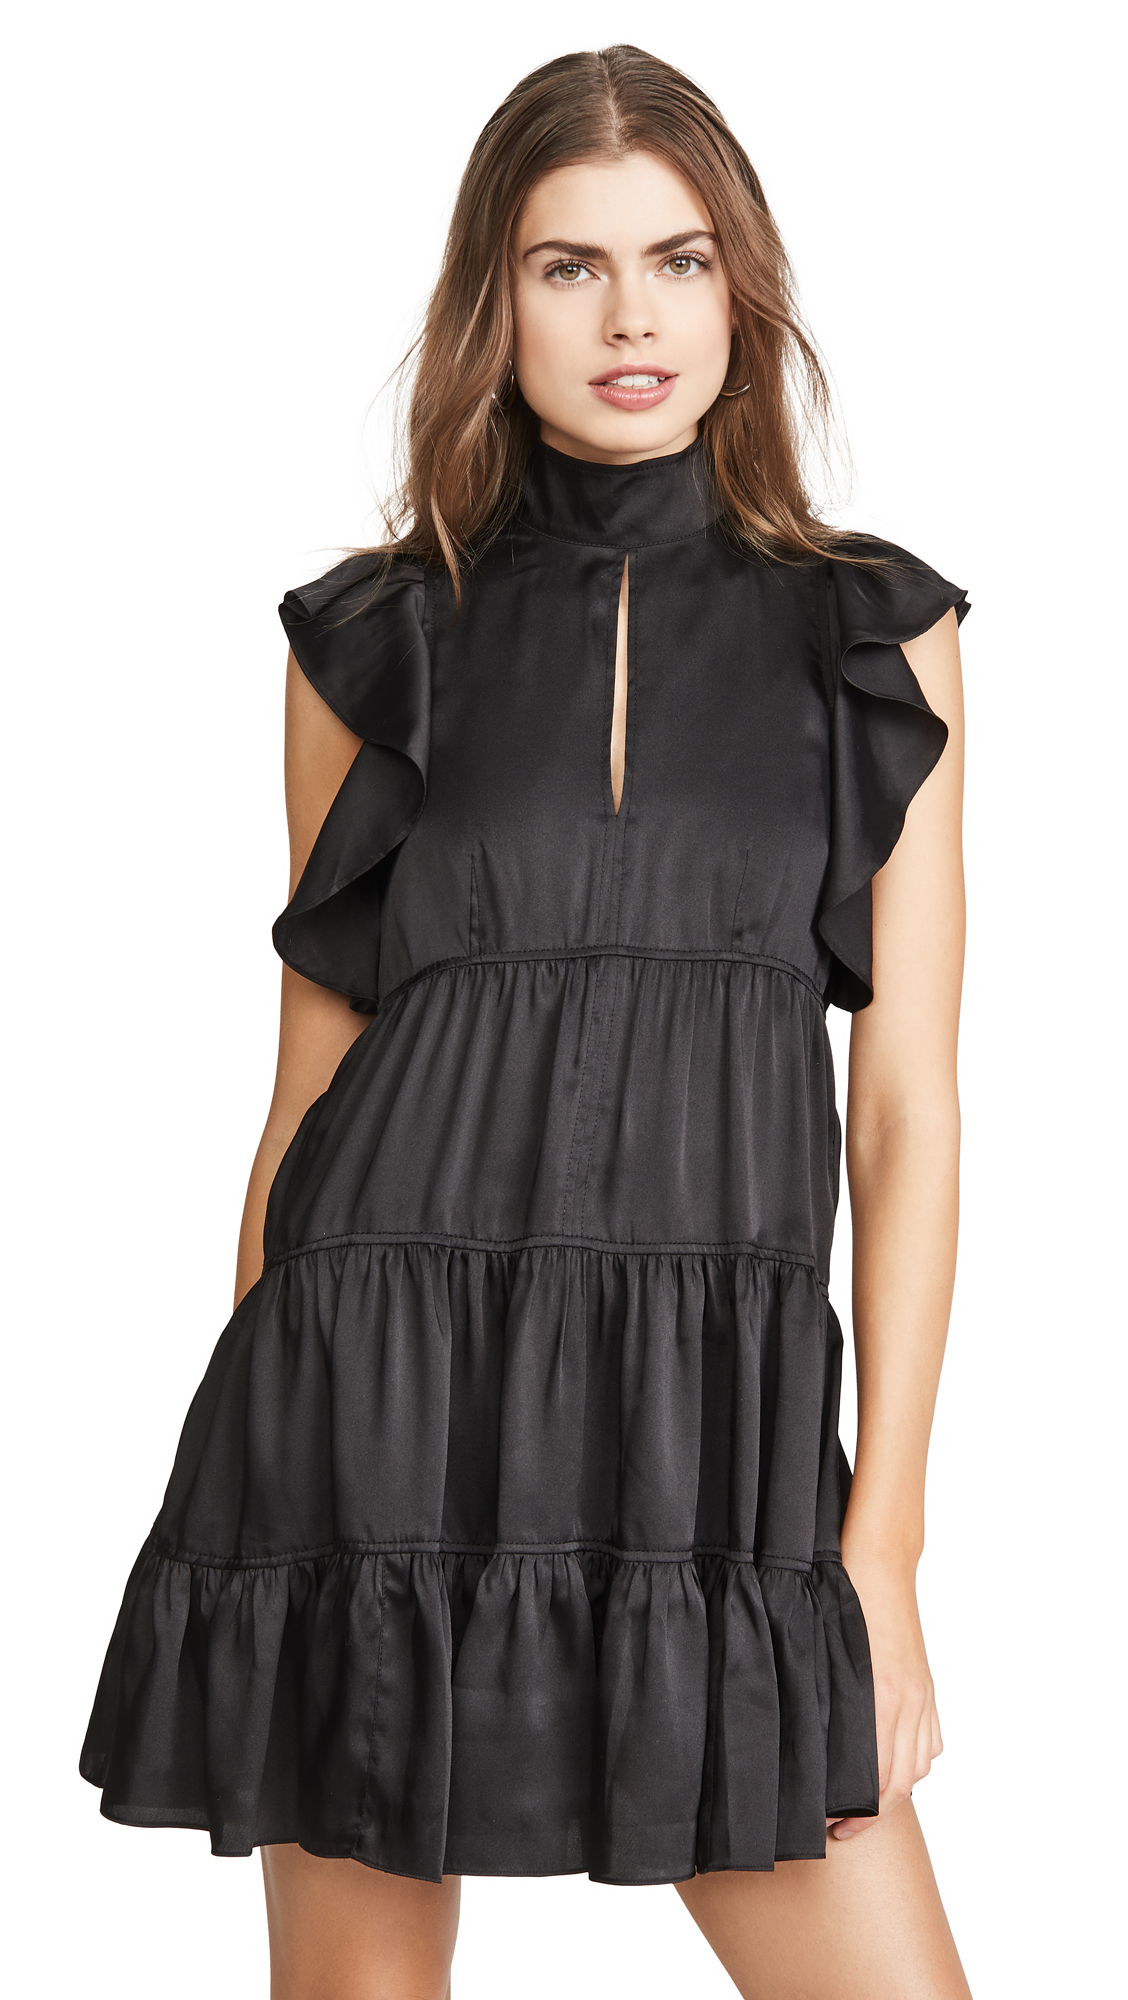 Cinq a Sept Rebecca Dress - 40% Off Sale